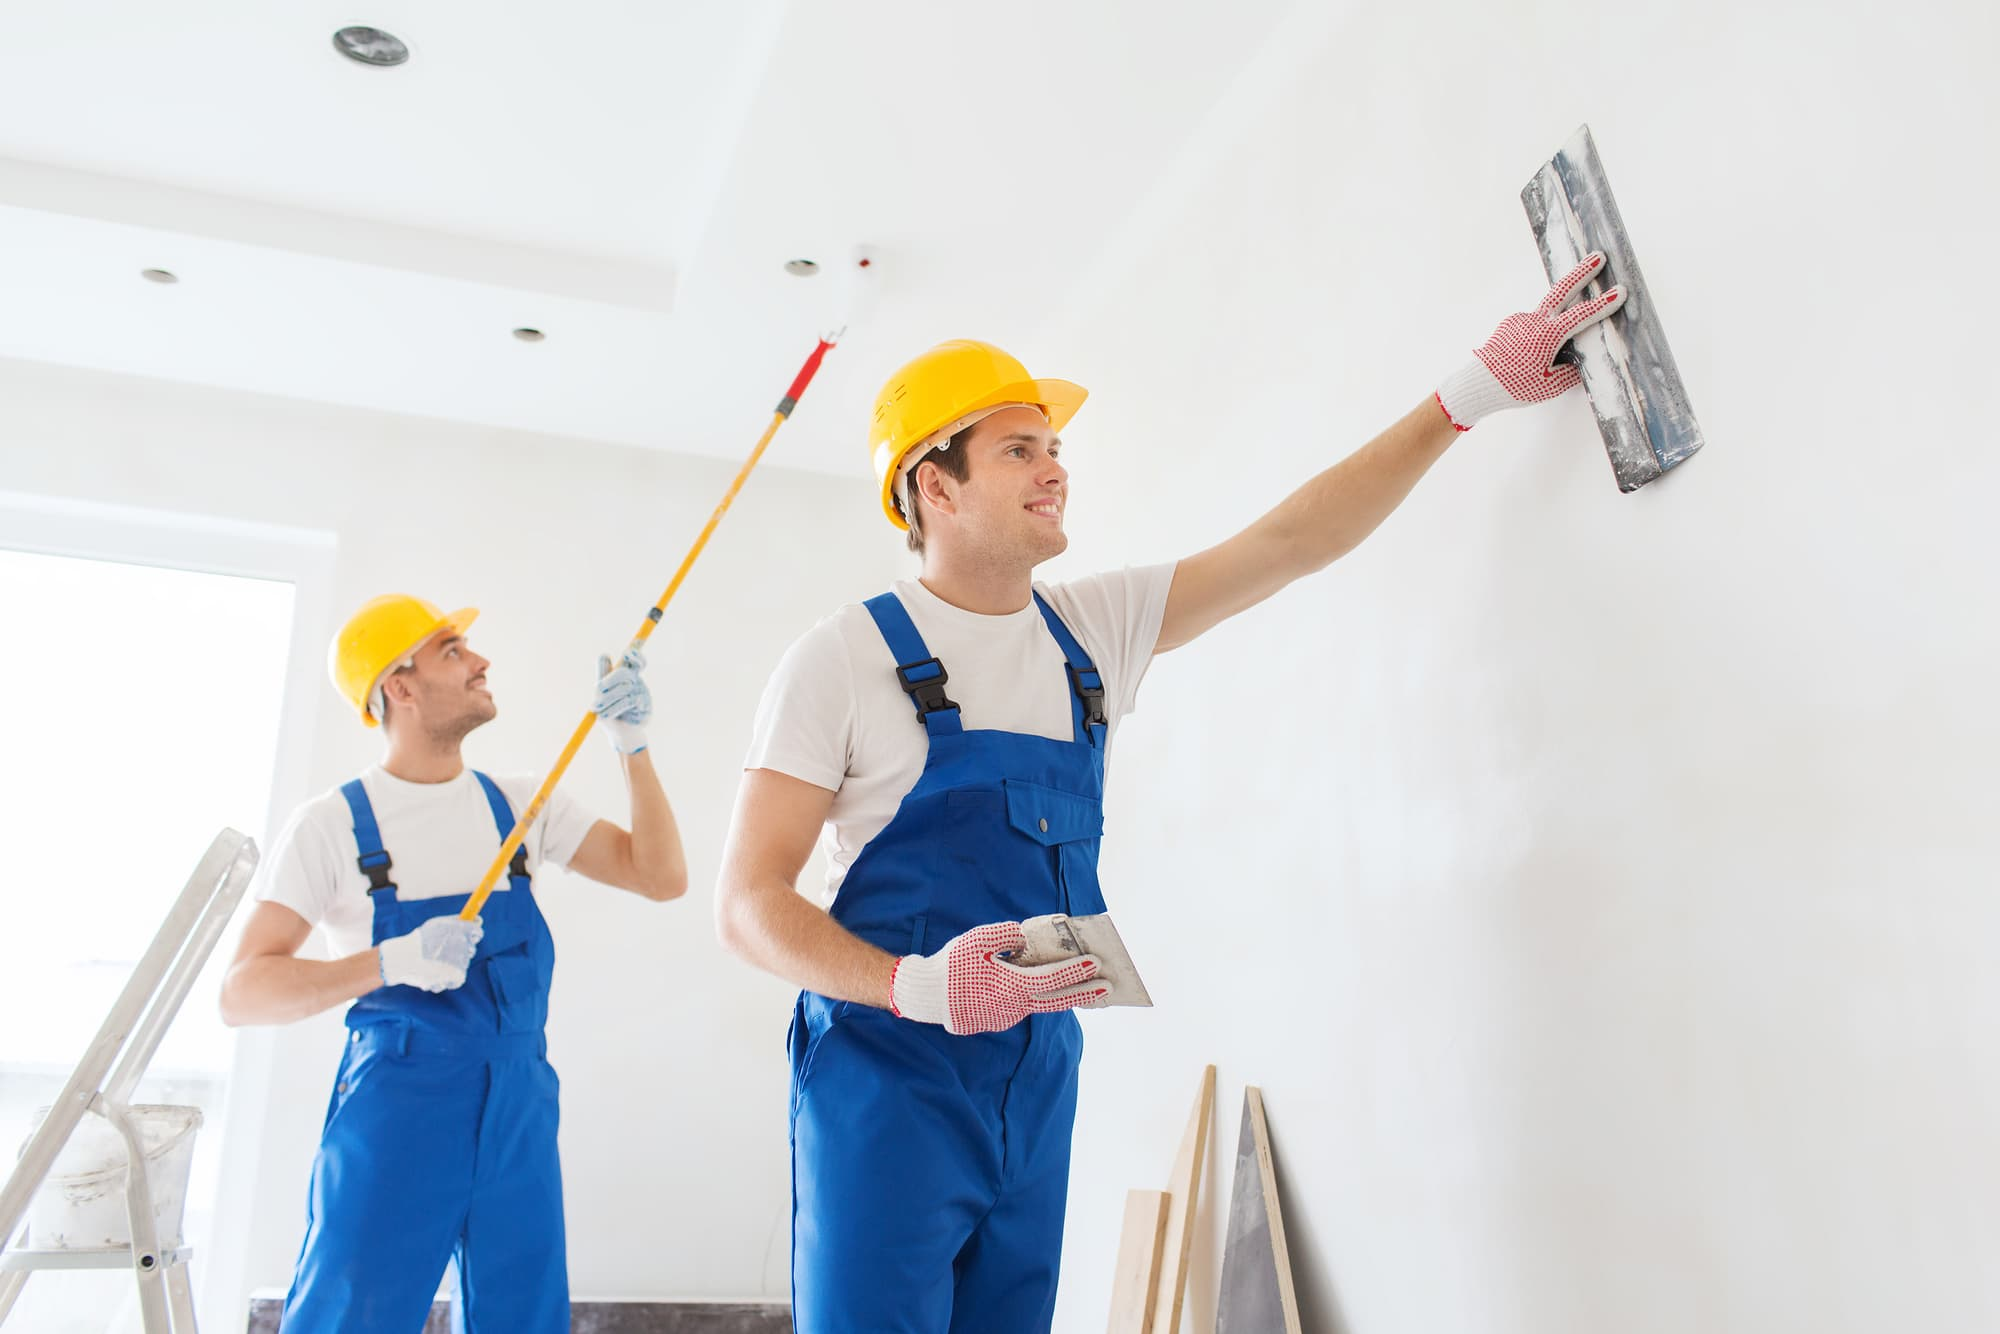 Professional Painters-Wichita Falls TX Professional Painting Contractors-We offer Residential & Commercial Painting, Interior Painting, Exterior Painting, Primer Painting, Industrial Painting, Professional Painters, Institutional Painters, and more.